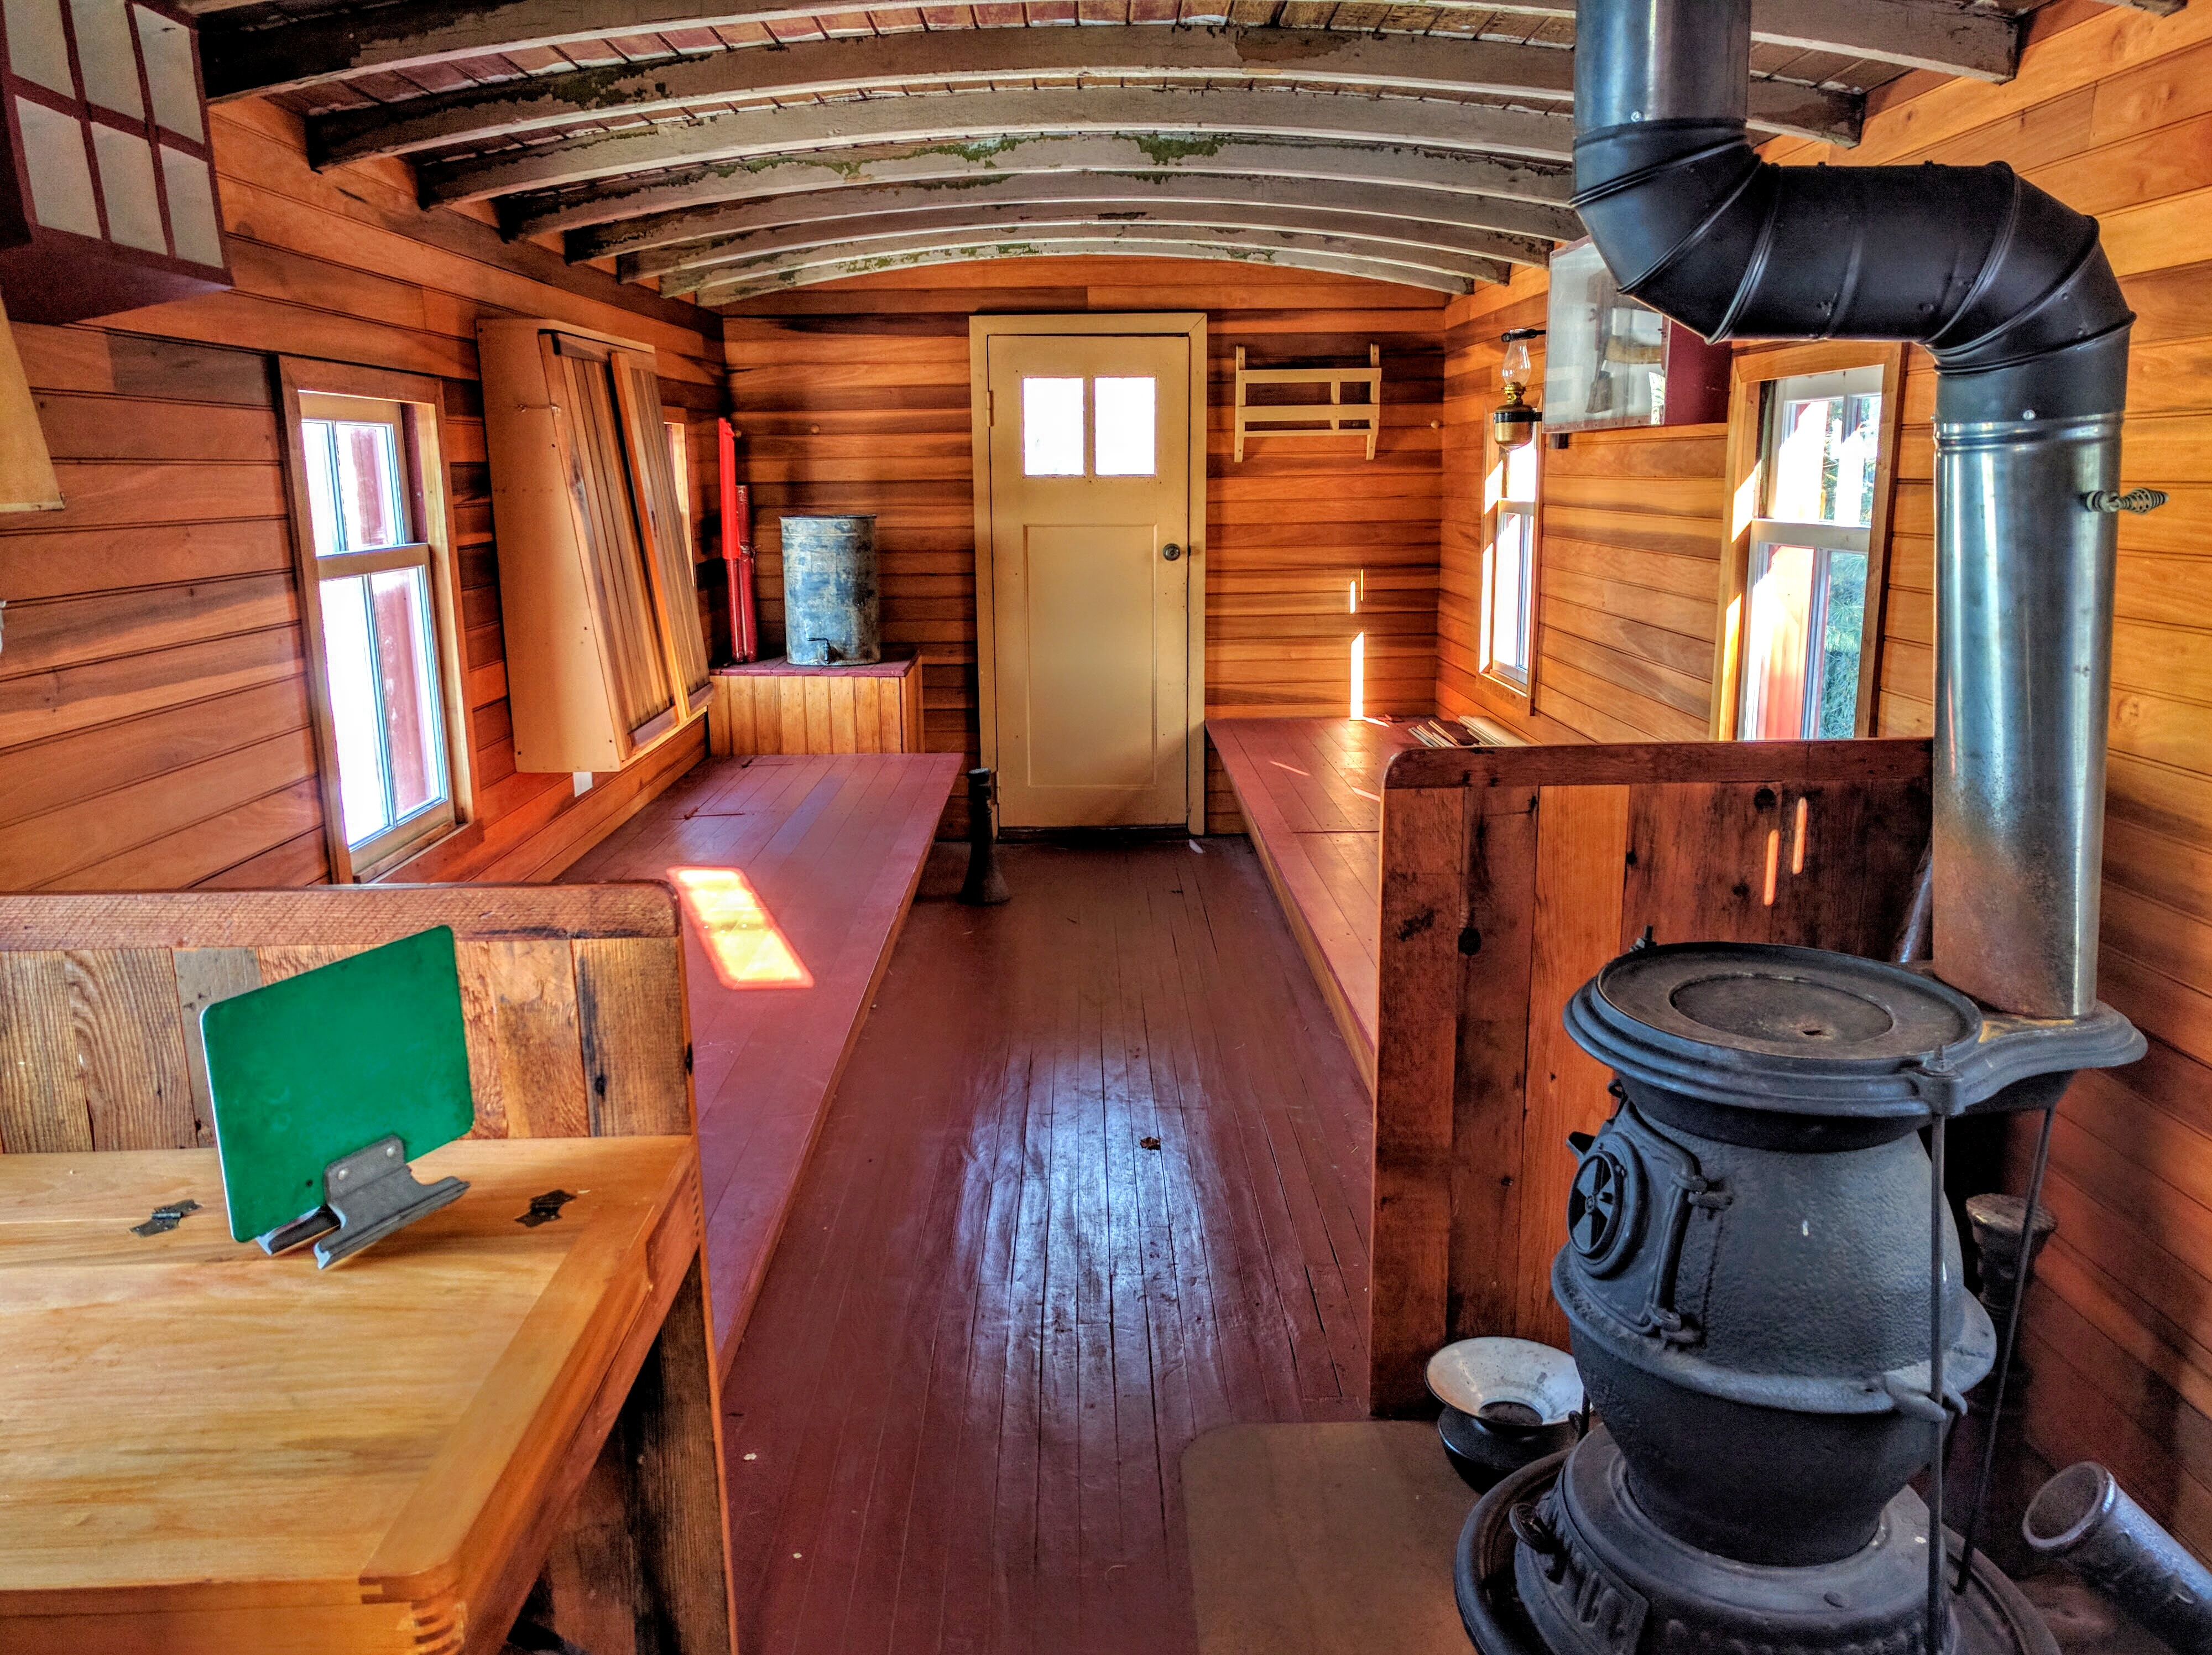 The inside of this waycar was restored by Lisle Heritage Society volunteers. When it was received by MLSP in 1998, the interior was covered from floor to ceiling with shag carpet!